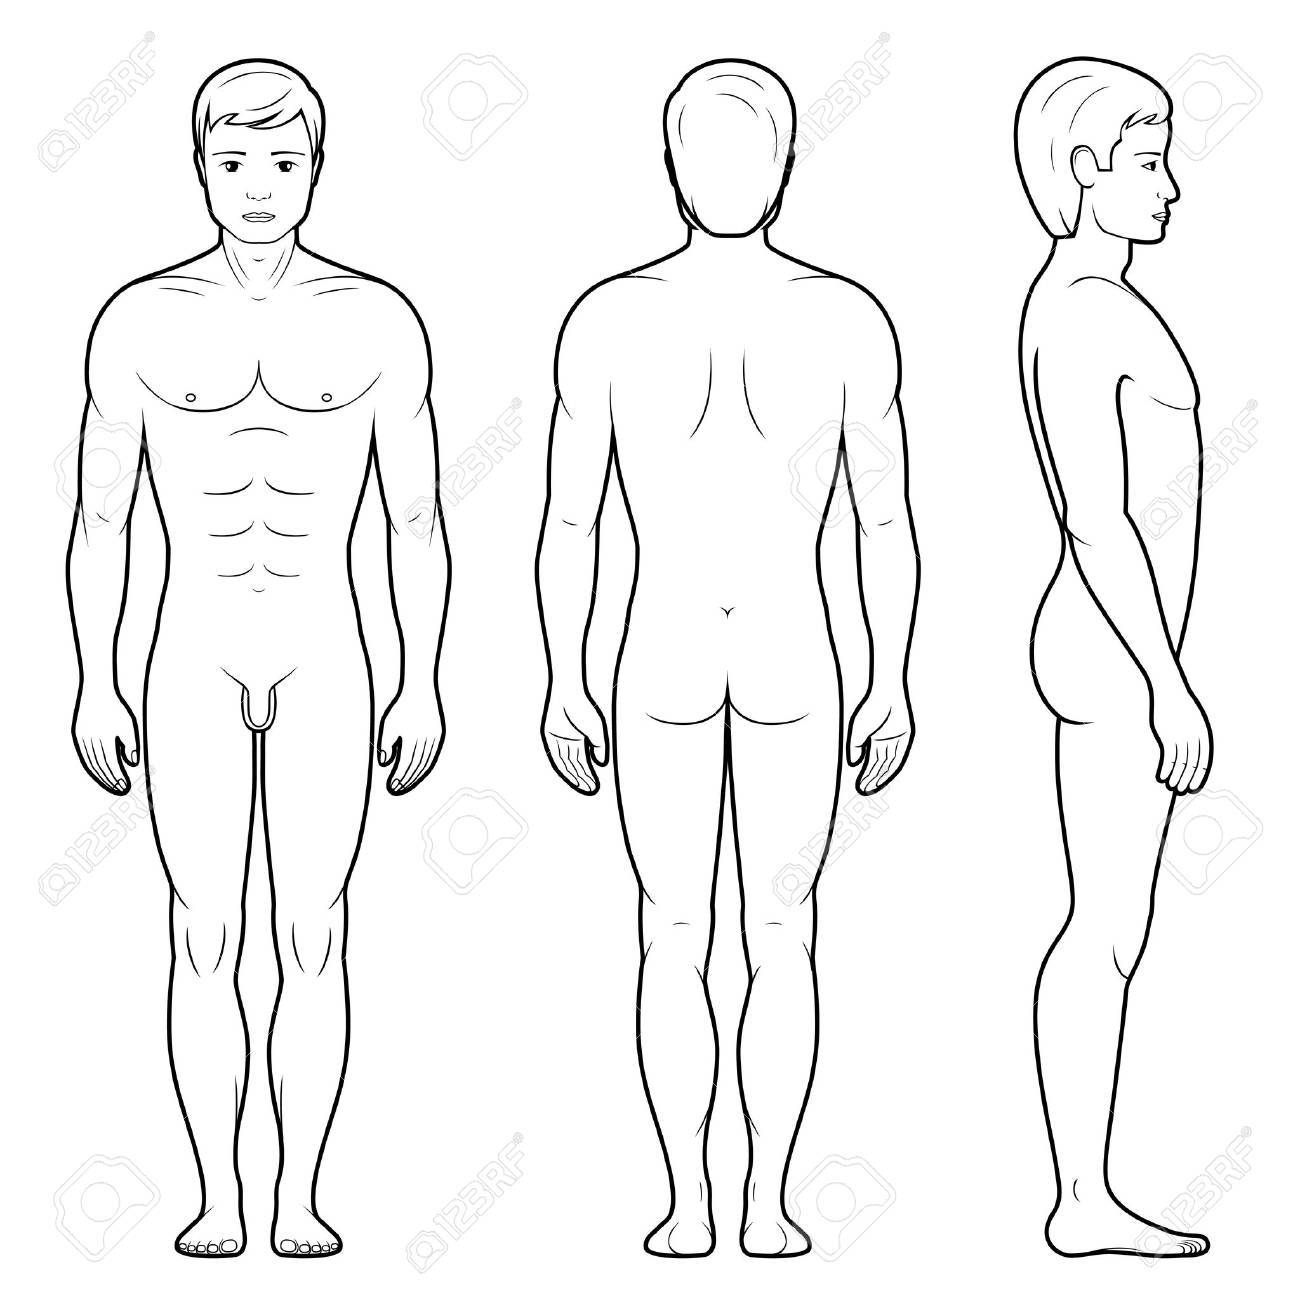 vector illustration of male figure front back and side view